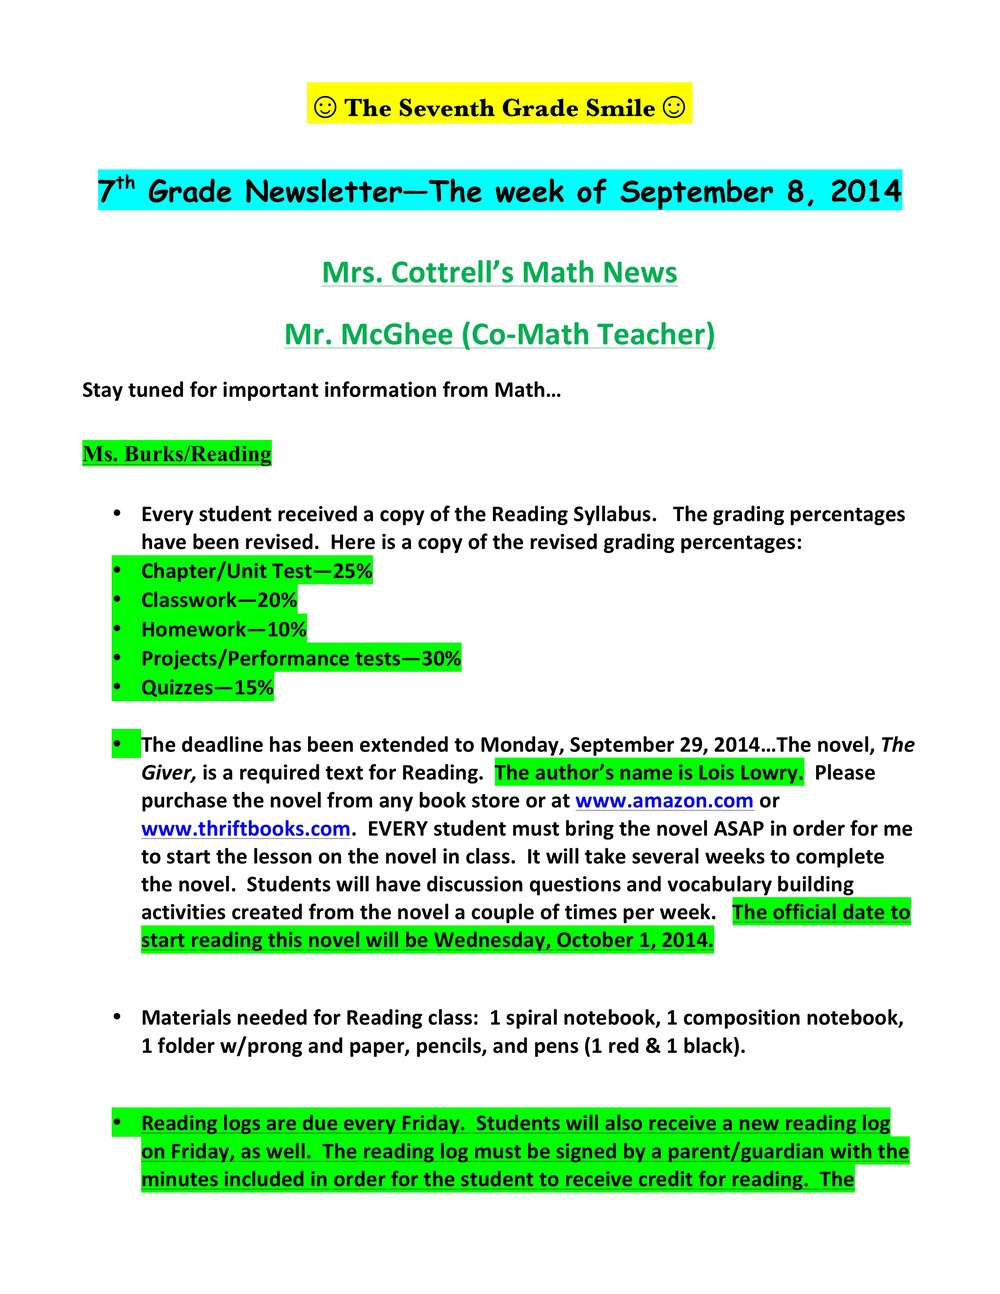 Newsletter Image7th grade sept 8-12 2014.jpeg